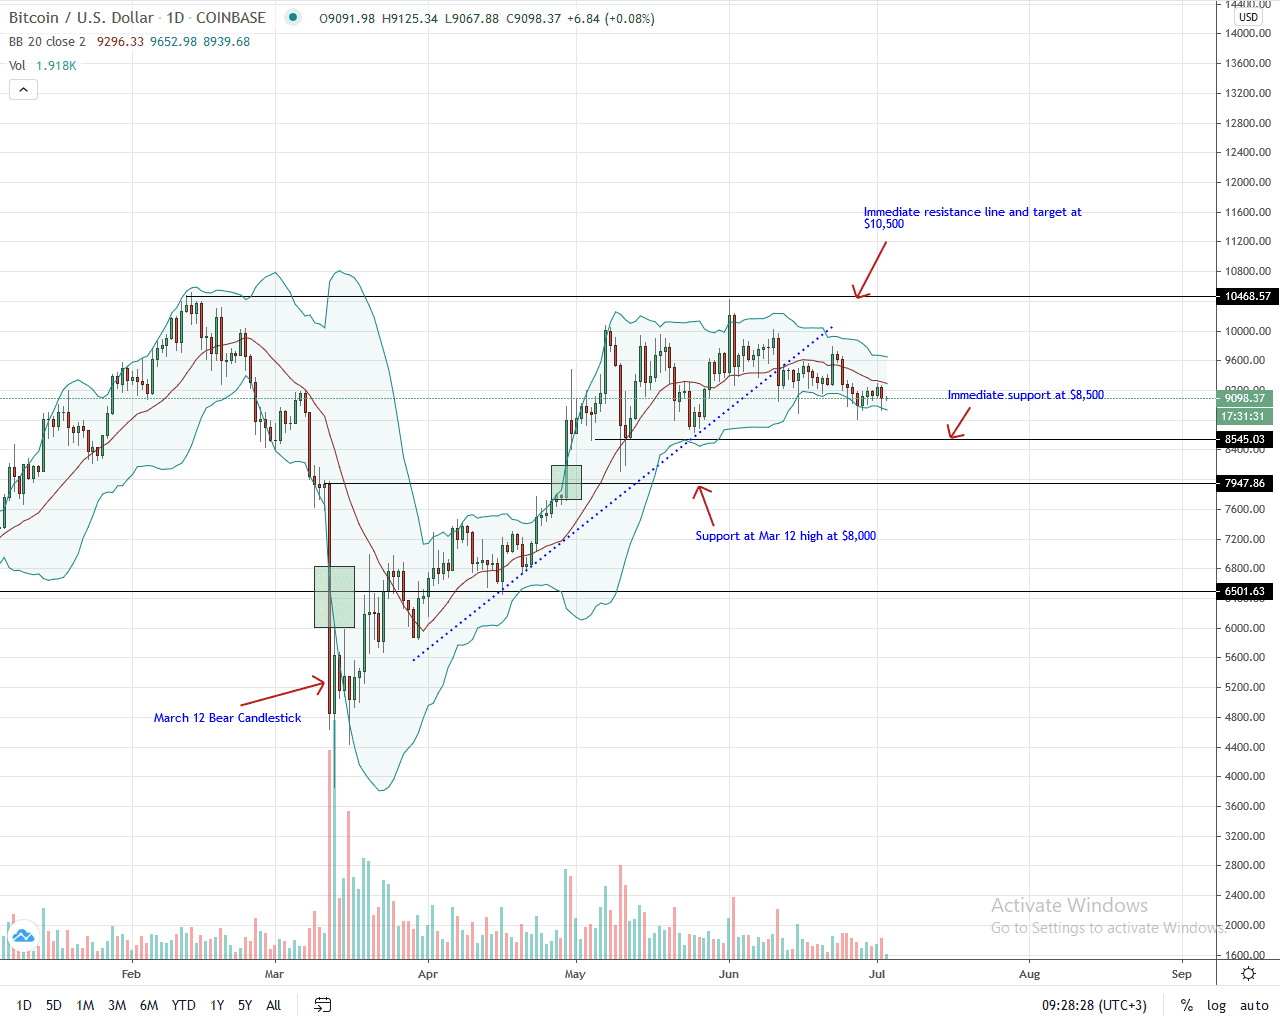 Bitcoin Daily Chart for July 3, 2020